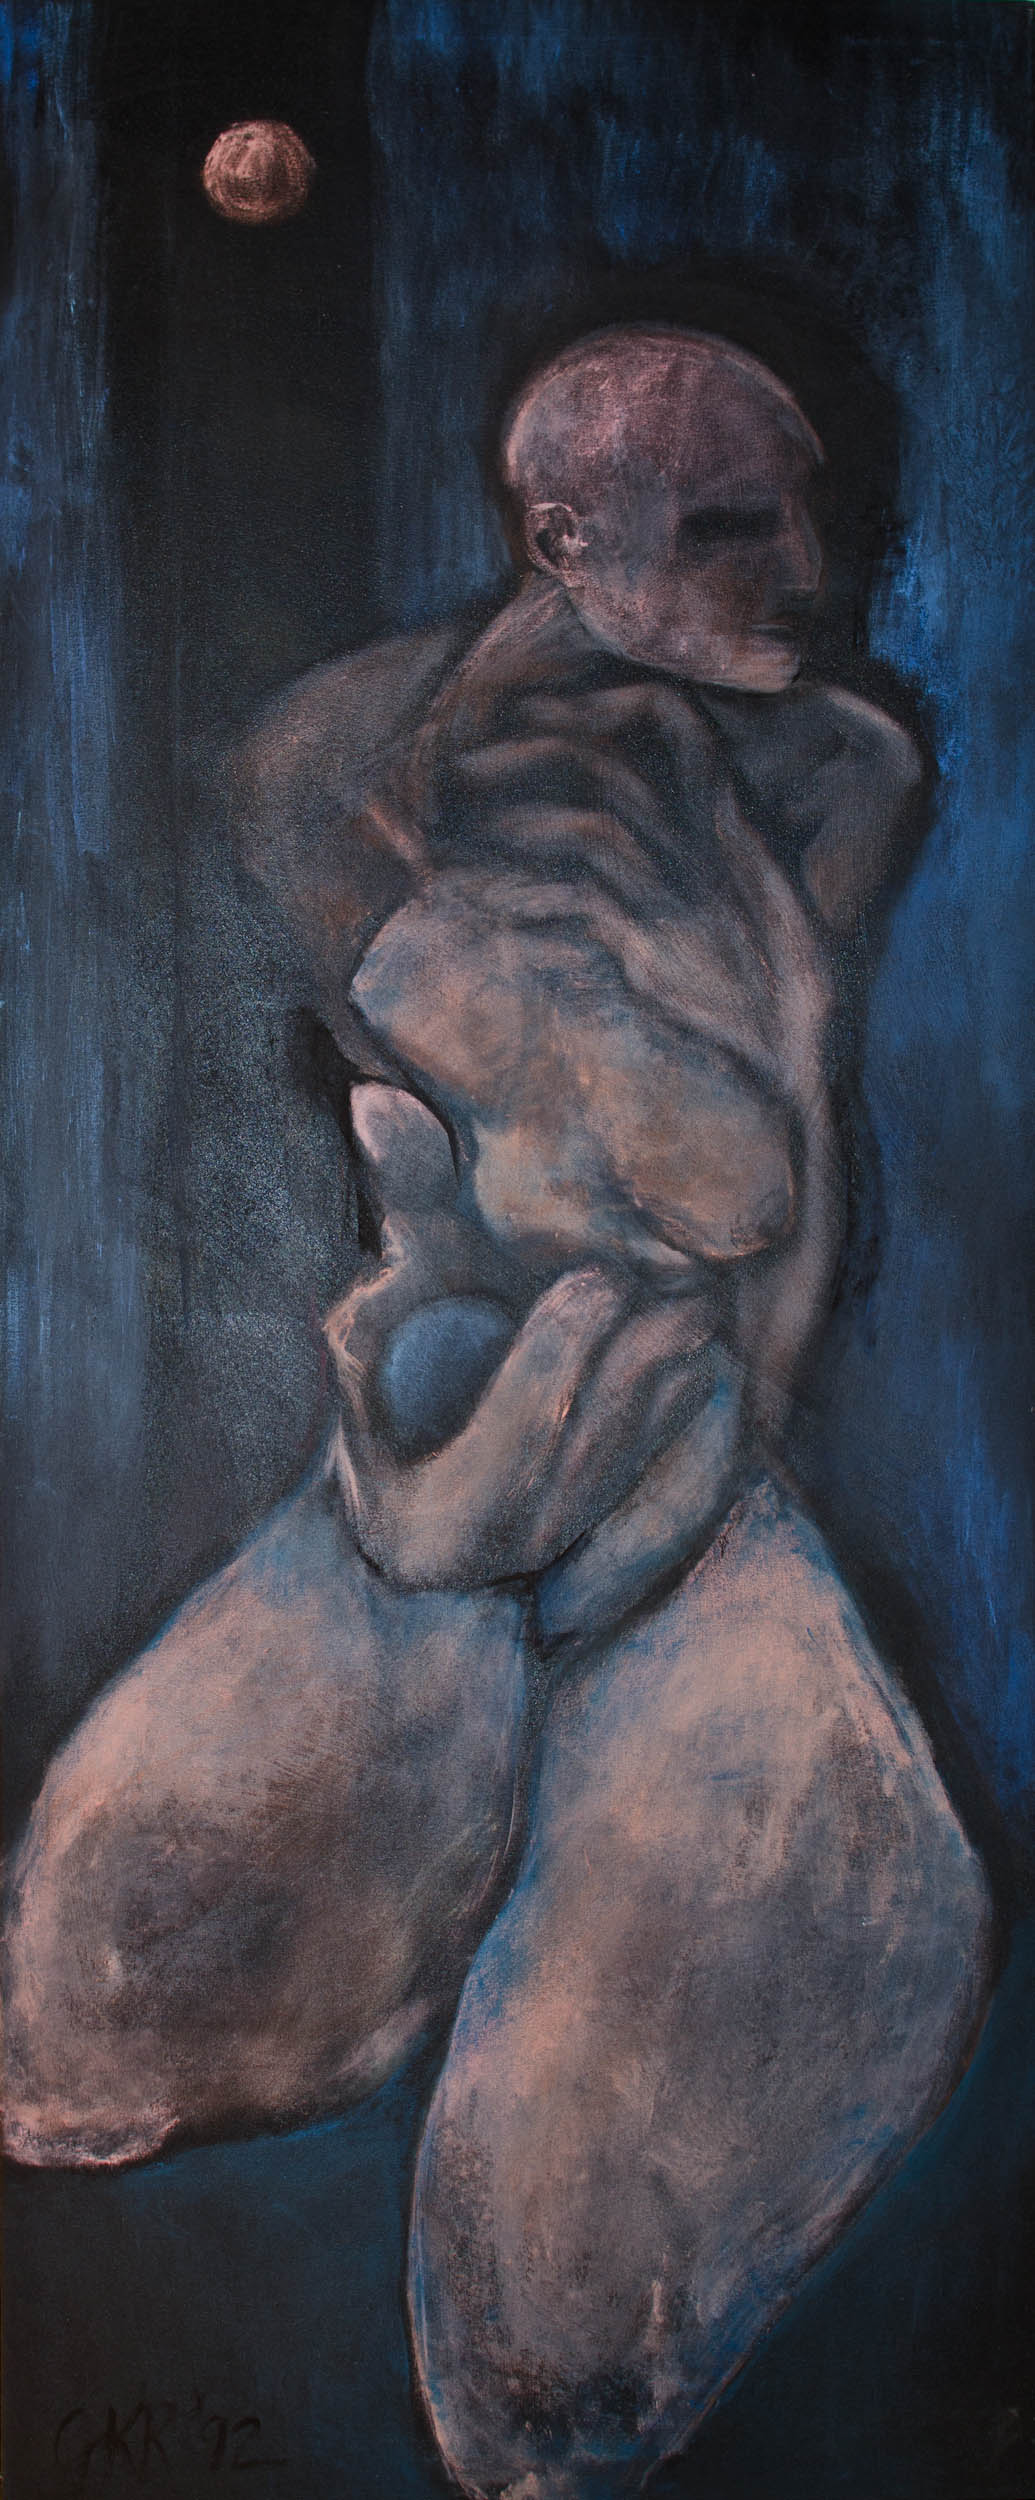 Mujer de la Luna, a painting by Kelly Rivera